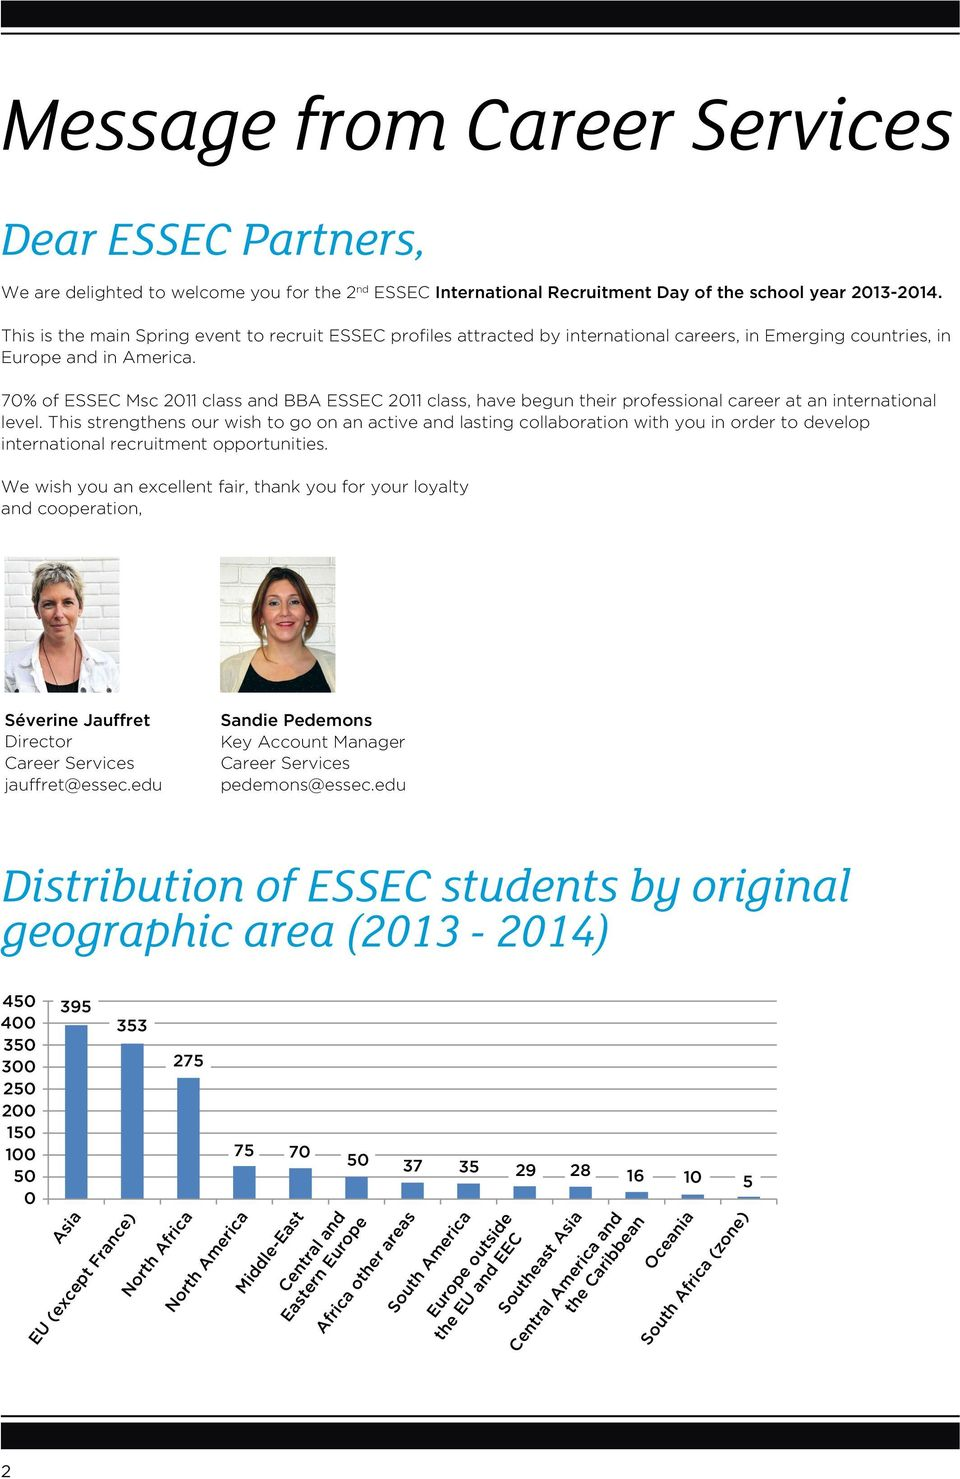 70% of ESSEC Msc 2011 class and BBA ESSEC 2011 class, have begun their professional career at an international level.